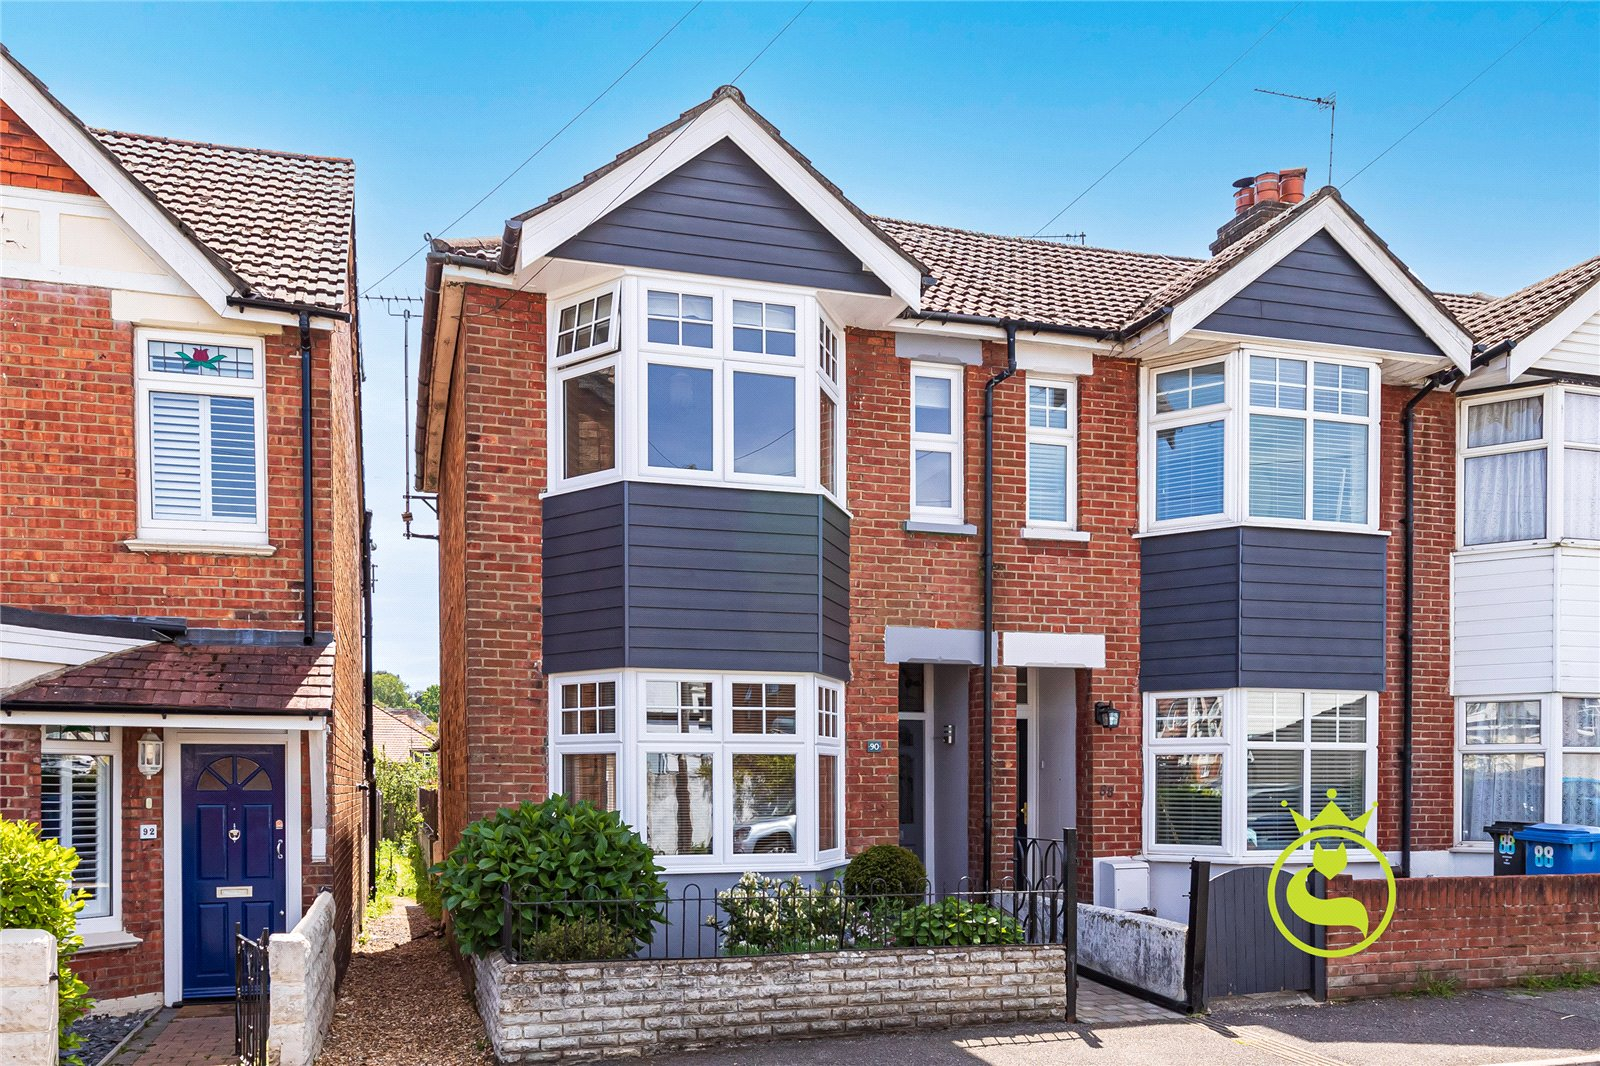 2 bed house for sale in Florence Road, Lower Parkstone, BH14